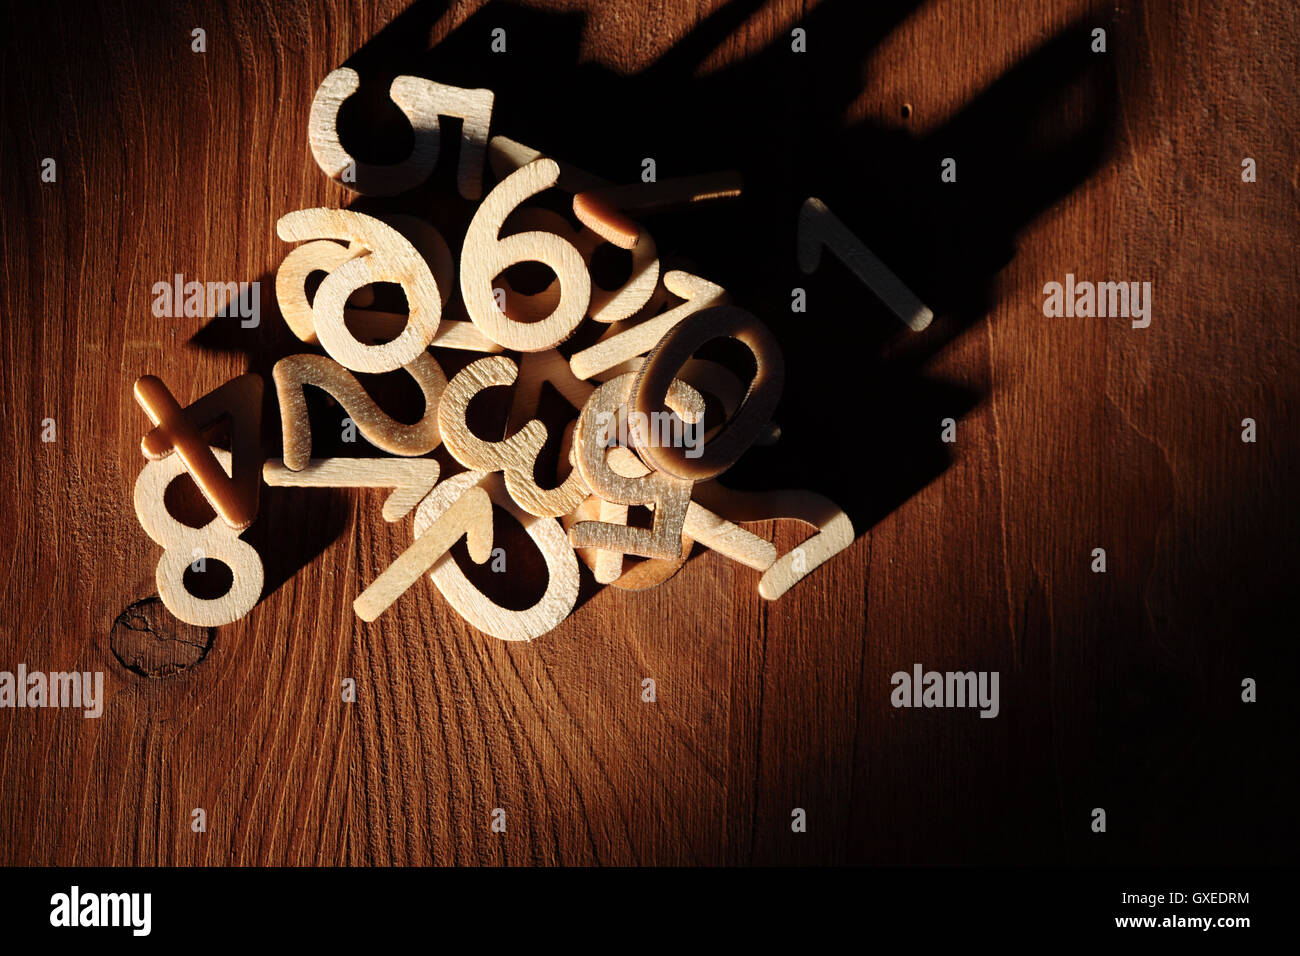 Heap Of Numbers - Stock Image